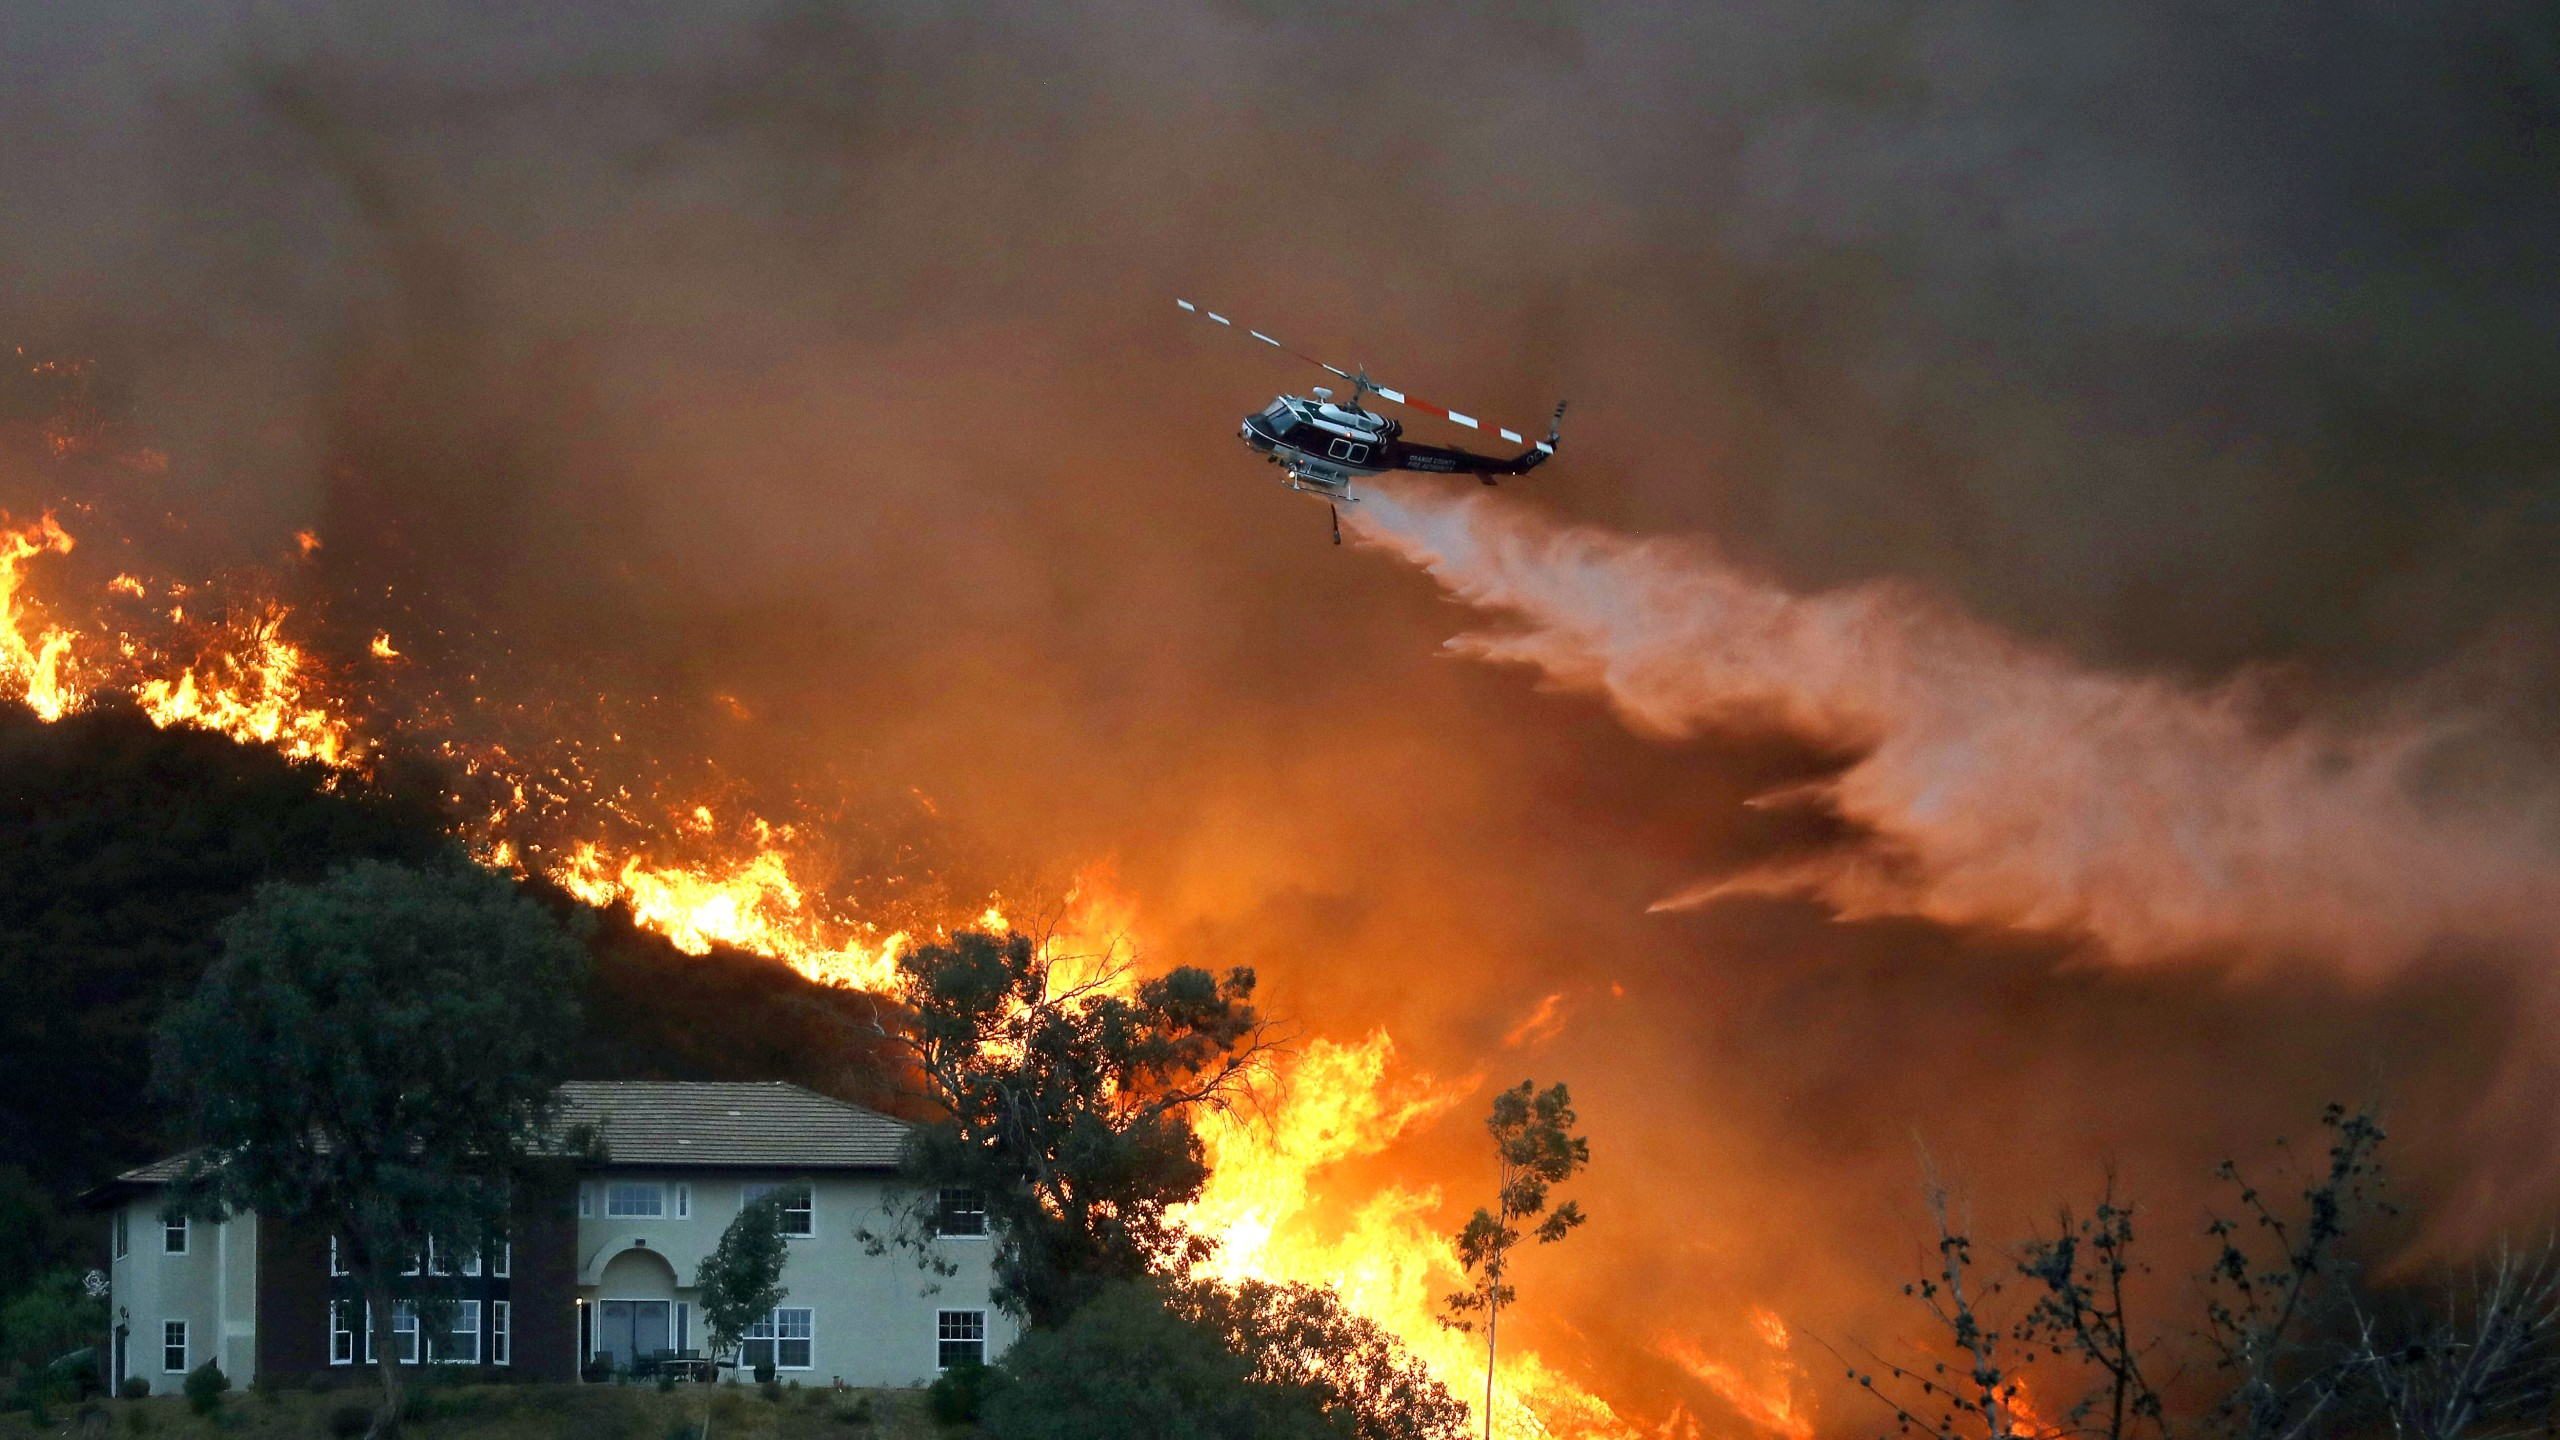 A firefighting helicopter makes a water drop as the Holy Fire burns near homes in Lake Elsinore on Aug. 9, 2018. (Credit: Mario Tama / Getty Images)